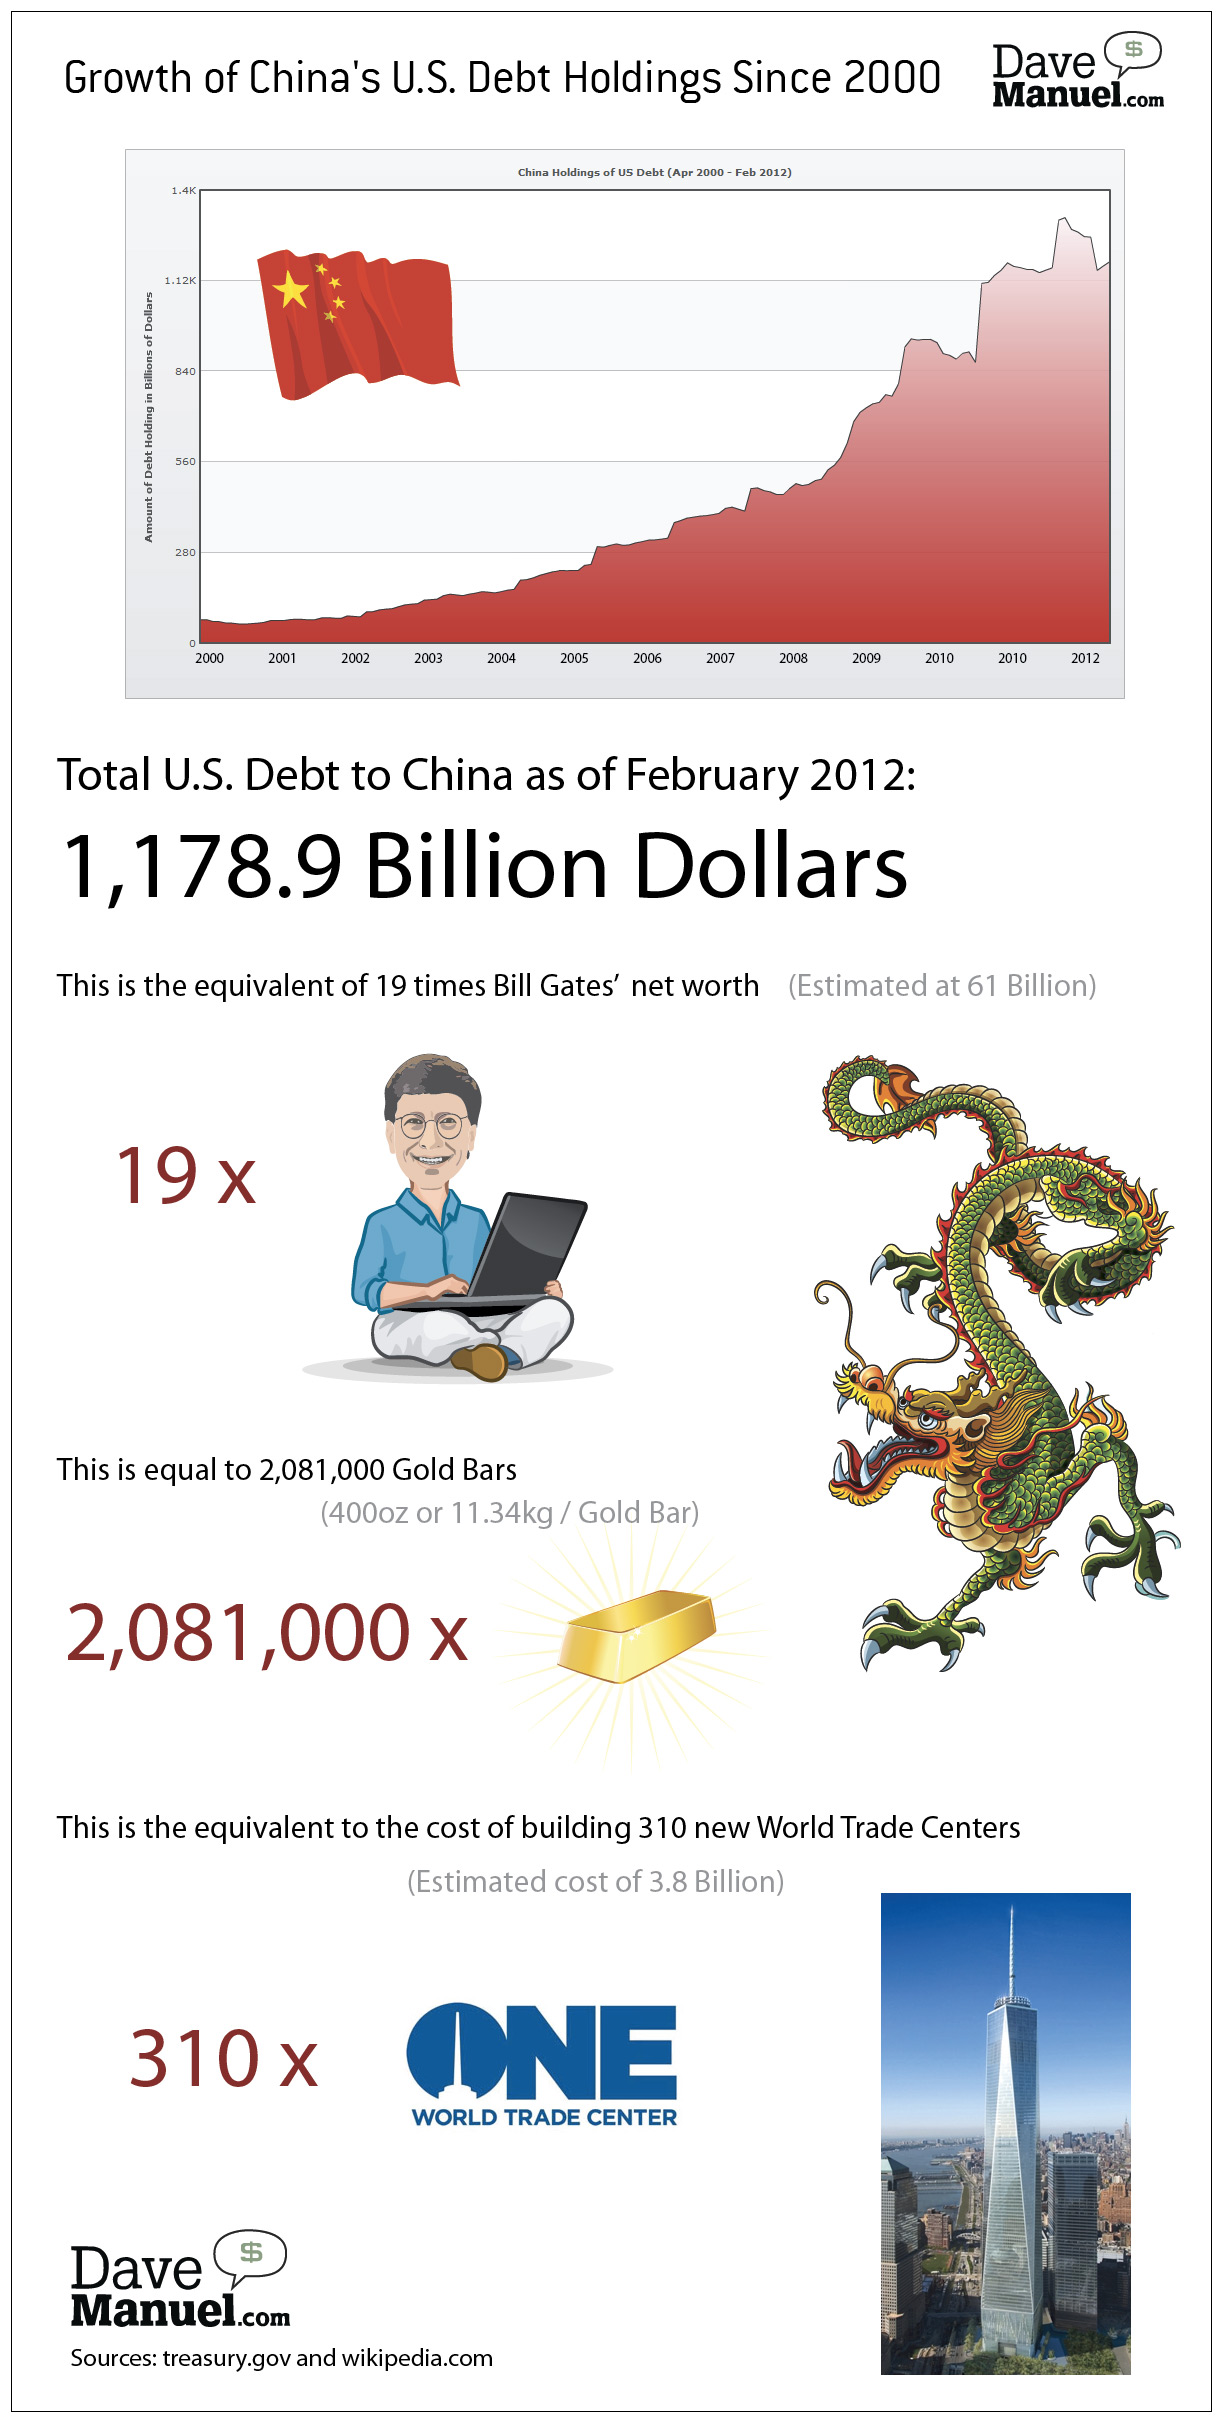 Infographic about growing U.S. debt to China - Compares the outstanding debt to net worth of Bill Gates, cost of building the One World Trade Center and gold bars - Illustration